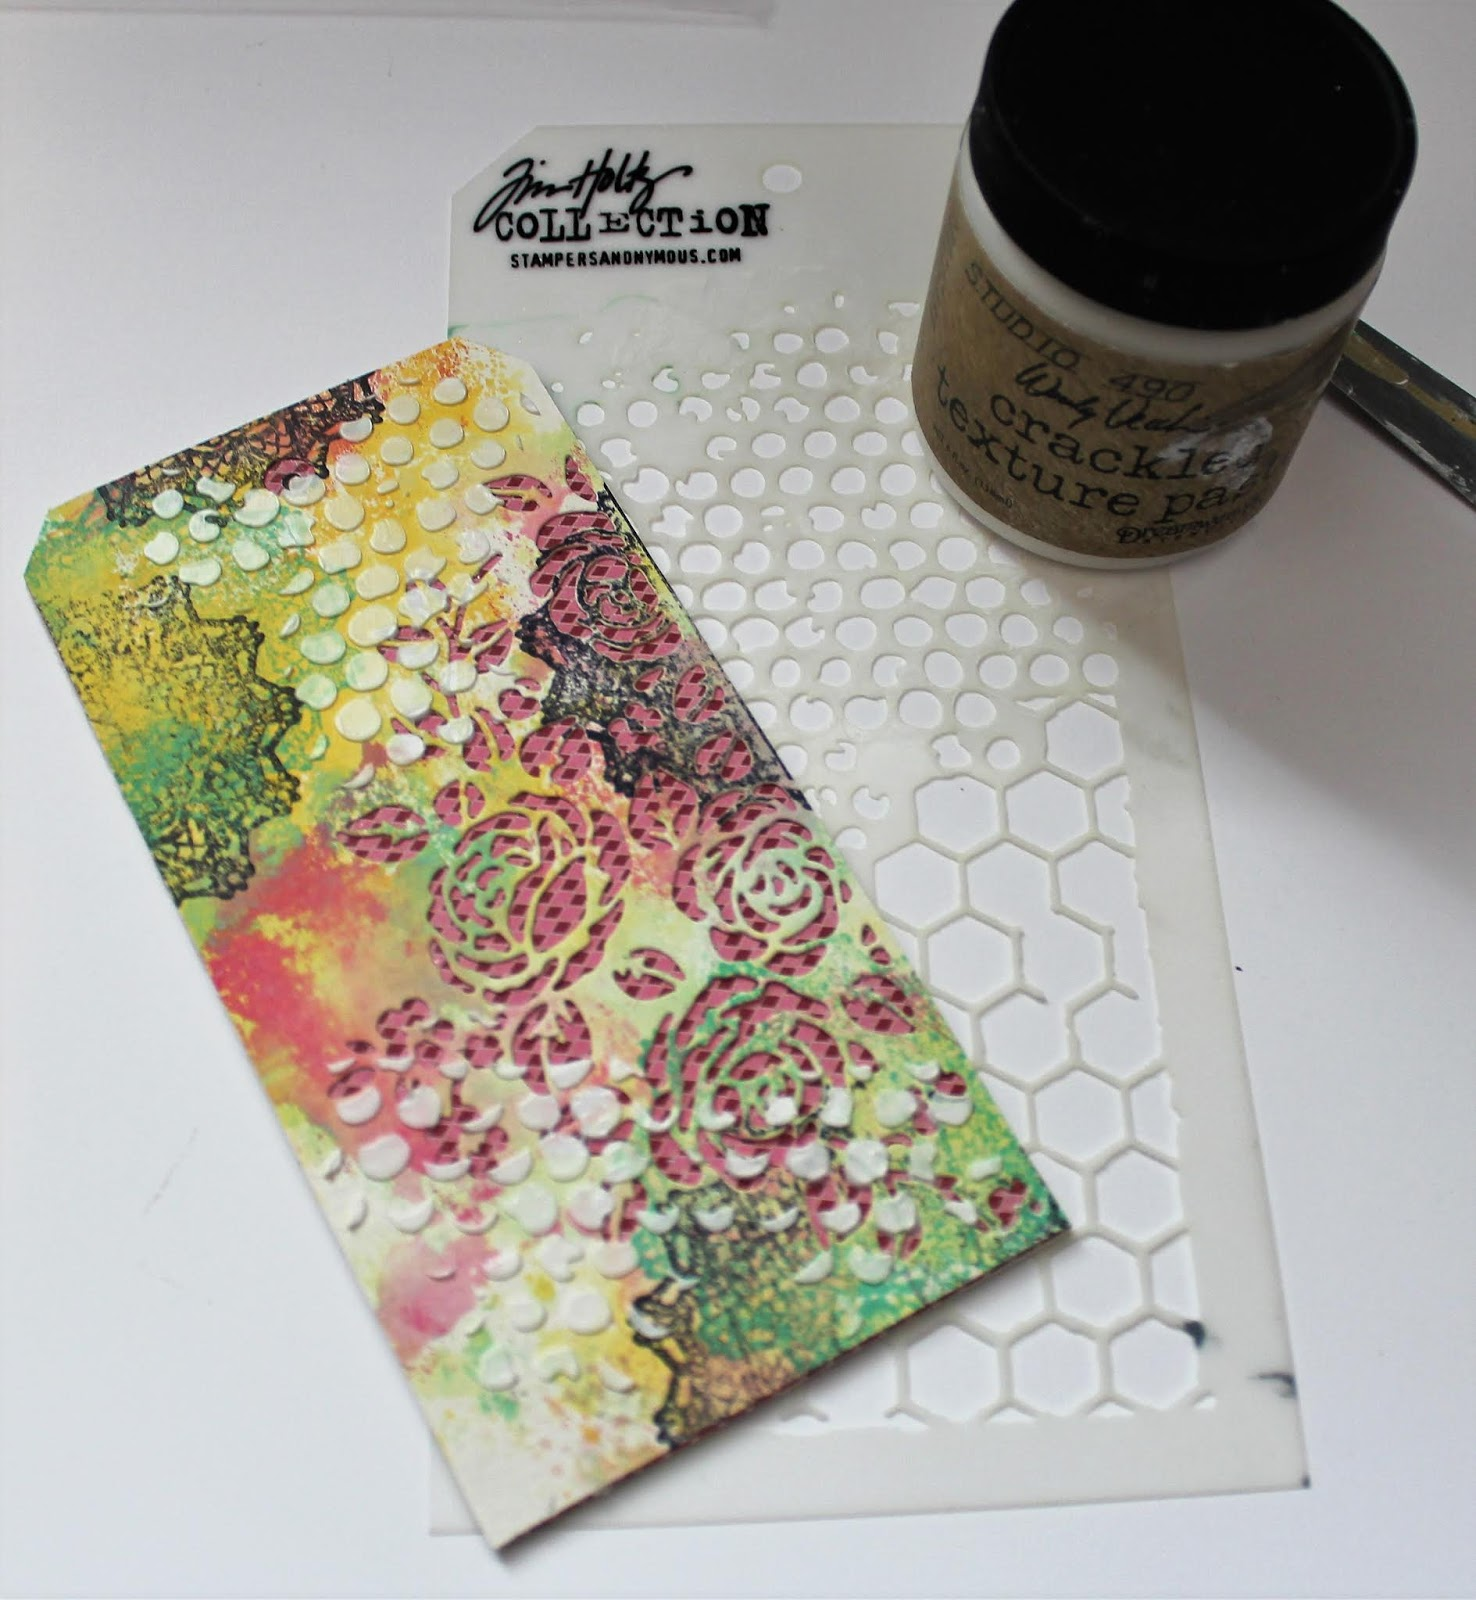 Designing a mixed media tag using Ranger Texture Paste and Stampers Anonymous Stencil